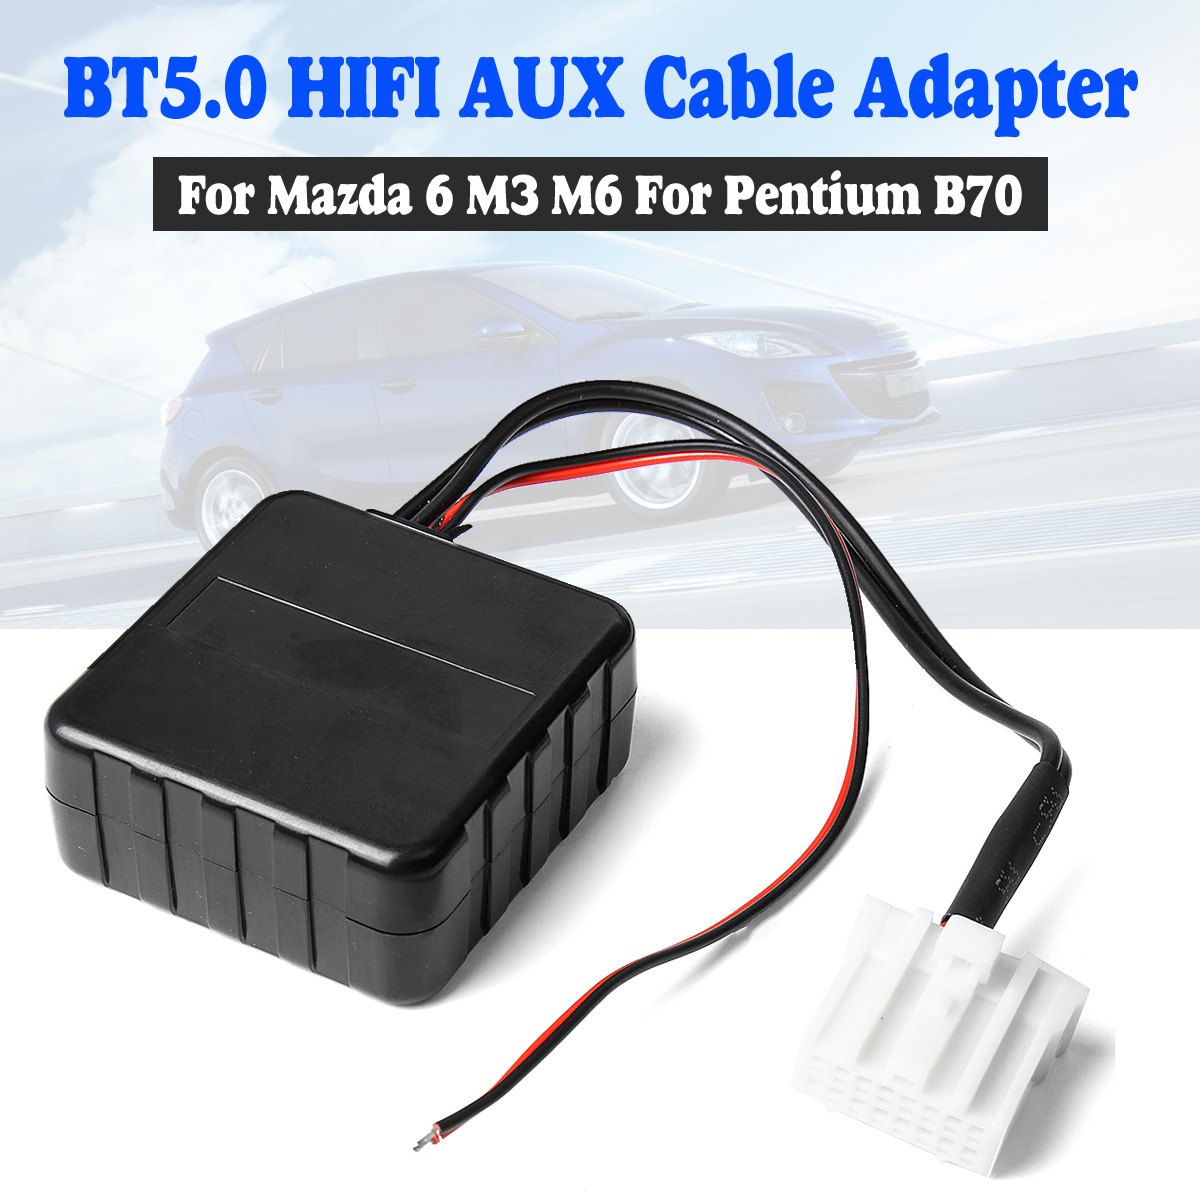 Car <font><b>bluetooth</b></font> Radio AUX Cable Adapter Stereo Music For <font><b>Mazda</b></font> <font><b>6</b></font> M6 M3 RX-8 MX-5 Pentium B70 image